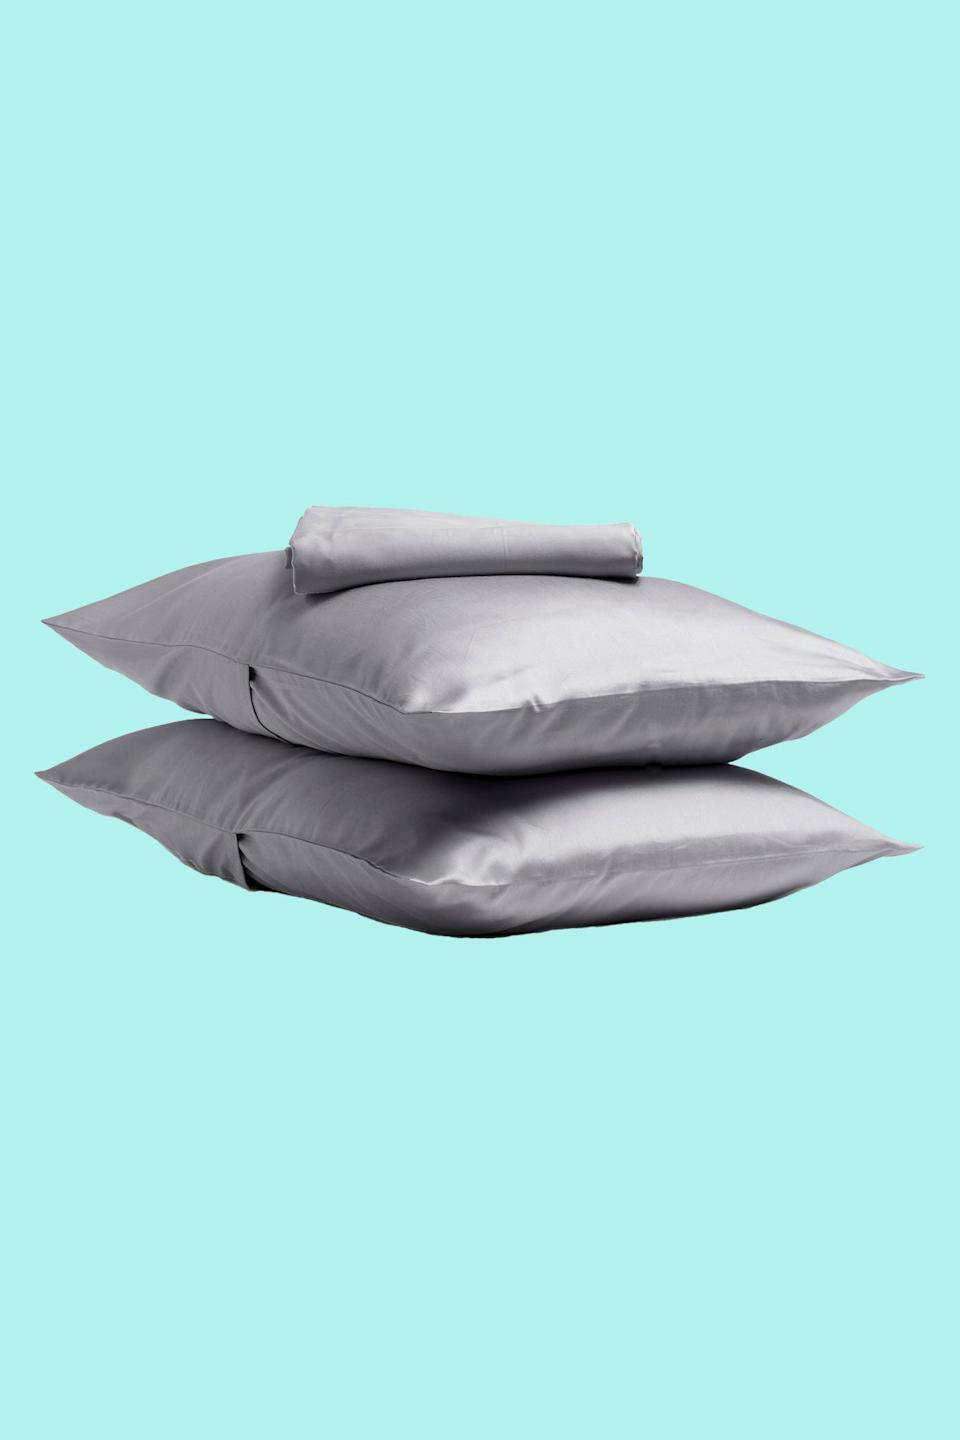 "<p><strong>Parachute</strong></p><p>parachutehome.com</p><p><strong>$129.00</strong></p><p><a href=""https://go.redirectingat.com?id=74968X1596630&url=https%3A%2F%2Fwww.parachutehome.com%2Fproducts%2Fsateen-sheet-set&sref=https%3A%2F%2Fwww.goodhousekeeping.com%2Fhome-products%2Fbest-sheets%2Fg27815306%2Fsoftest-bed-sheets%2F"" rel=""nofollow noopener"" target=""_blank"" data-ylk=""slk:Shop Now"" class=""link rapid-noclick-resp"">Shop Now</a></p><p>It's hard to know whether you'll like sleeping on sheets until you have a chance to try them at home so <strong>Parachute offers a 90-day trial period with free returns for any reason, even if they're used.</strong> You can also buy a <a href=""https://go.redirectingat.com?id=74968X1596630&url=https%3A%2F%2Fwww.parachutehome.com%2Fcollections%2Ffabric-swatches&sref=https%3A%2F%2Fwww.goodhousekeeping.com%2Fhome-products%2Fbest-sheets%2Fg27815306%2Fsoftest-bed-sheets%2F"" rel=""nofollow noopener"" target=""_blank"" data-ylk=""slk:swatch"" class=""link rapid-noclick-resp"">swatch</a> for $3 ahead of time if you want to feel the fabric before you order the set. </p><p>This Egyptian cotton sateen fabric had a higher softness score than some of its <a href=""https://www.goodhousekeeping.com/home-products/best-sheets/a27323978/brooklinen-vs-parachute-sheets/"" rel=""nofollow noopener"" target=""_blank"" data-ylk=""slk:online competitors"" class=""link rapid-noclick-resp"">online competitors</a>, and though it looked wrinkled after we washed it, the sheets were virtually pill-free in our tests. You also can choose to buy this set with or without a <a href=""https://www.goodhousekeeping.com/home/a22874631/its-time-to-say-goodbye-to-top-sheets-forever/"" rel=""nofollow noopener"" target=""_blank"" data-ylk=""slk:top sheet"" class=""link rapid-noclick-resp"">top sheet</a>. </p>"